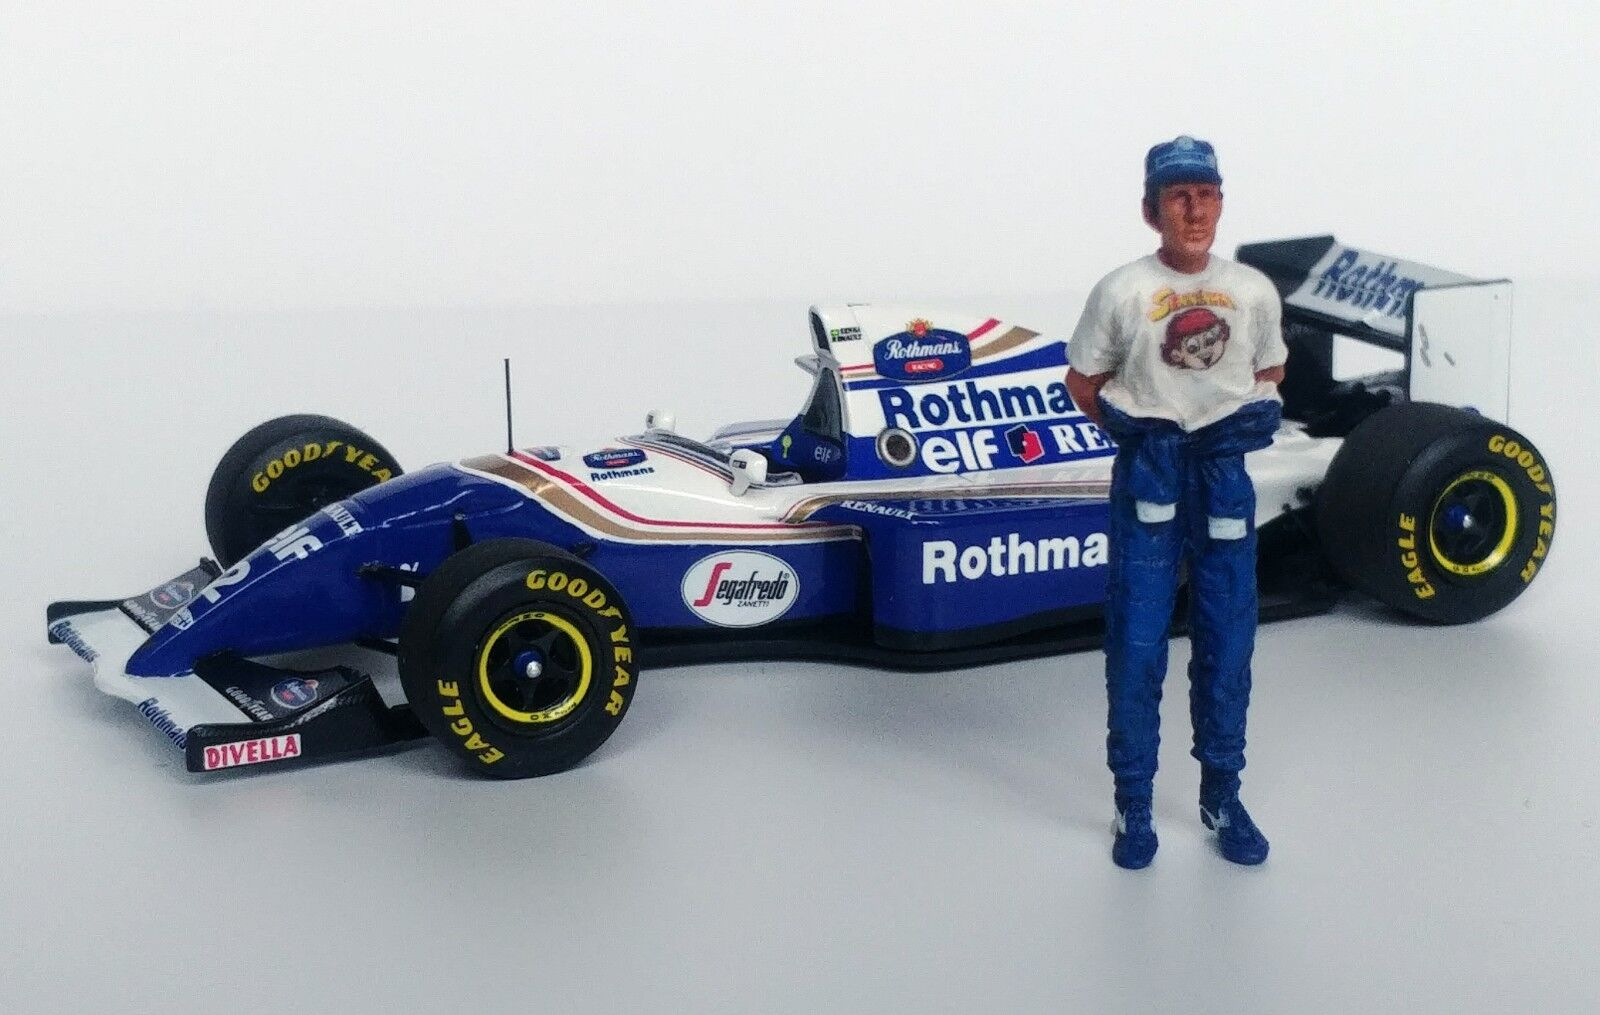 1 43 Senna 1994 redhmans Williams Renault FW16 figurine figure Standing +cap MFH